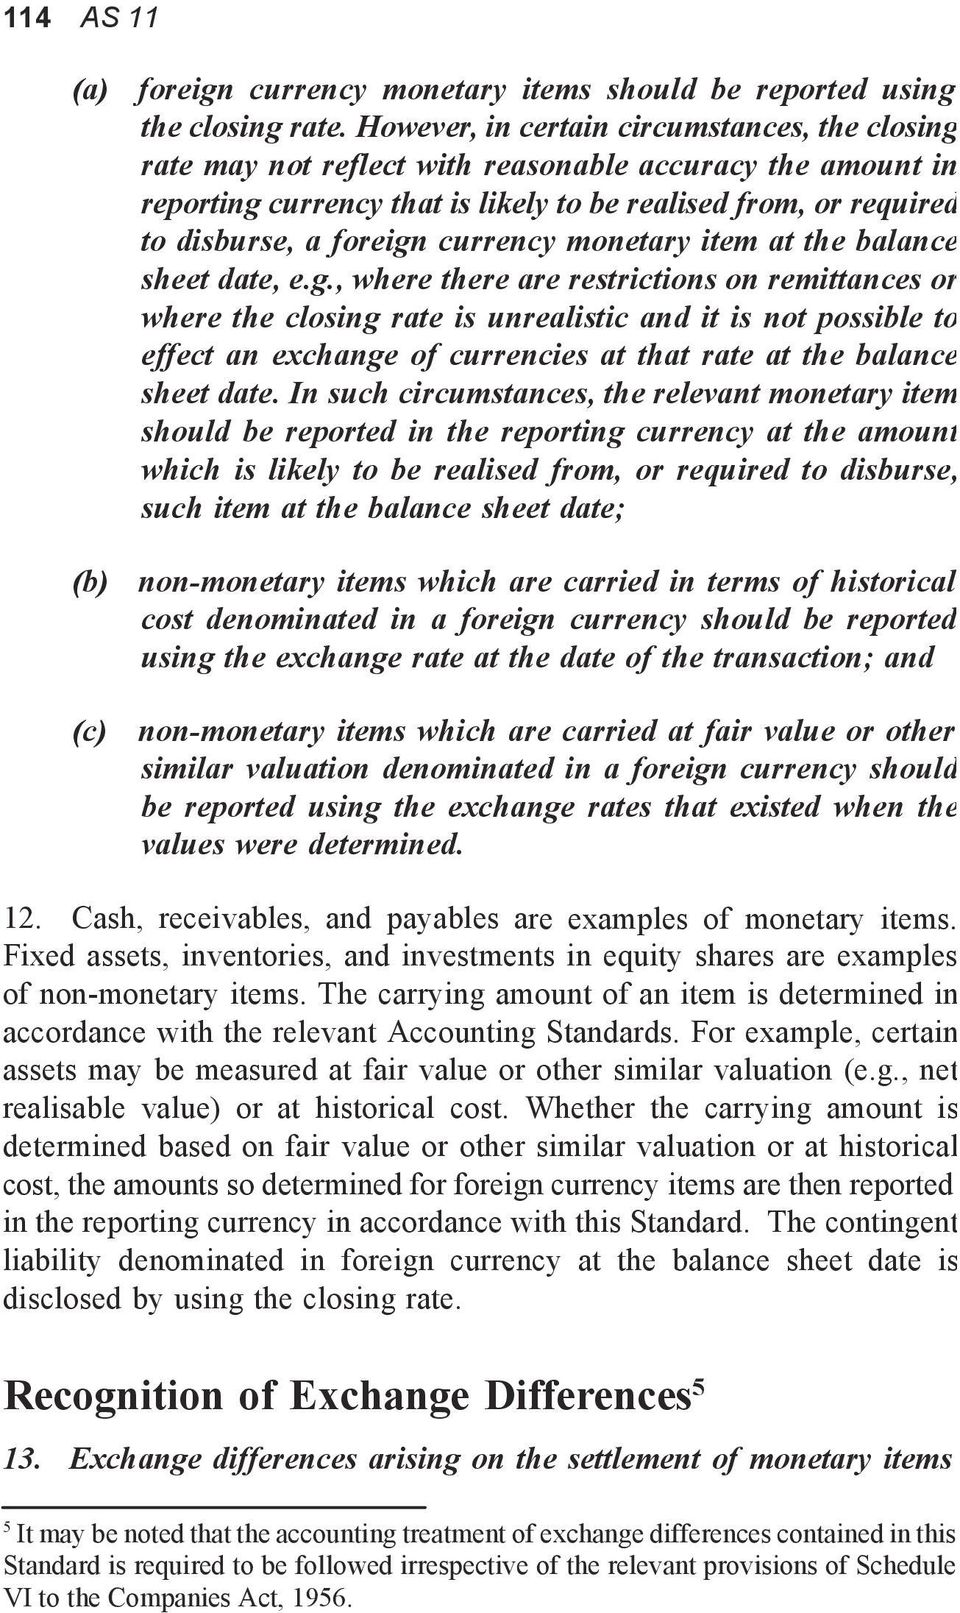 currency monetary item at the balance sheet date, e.g.